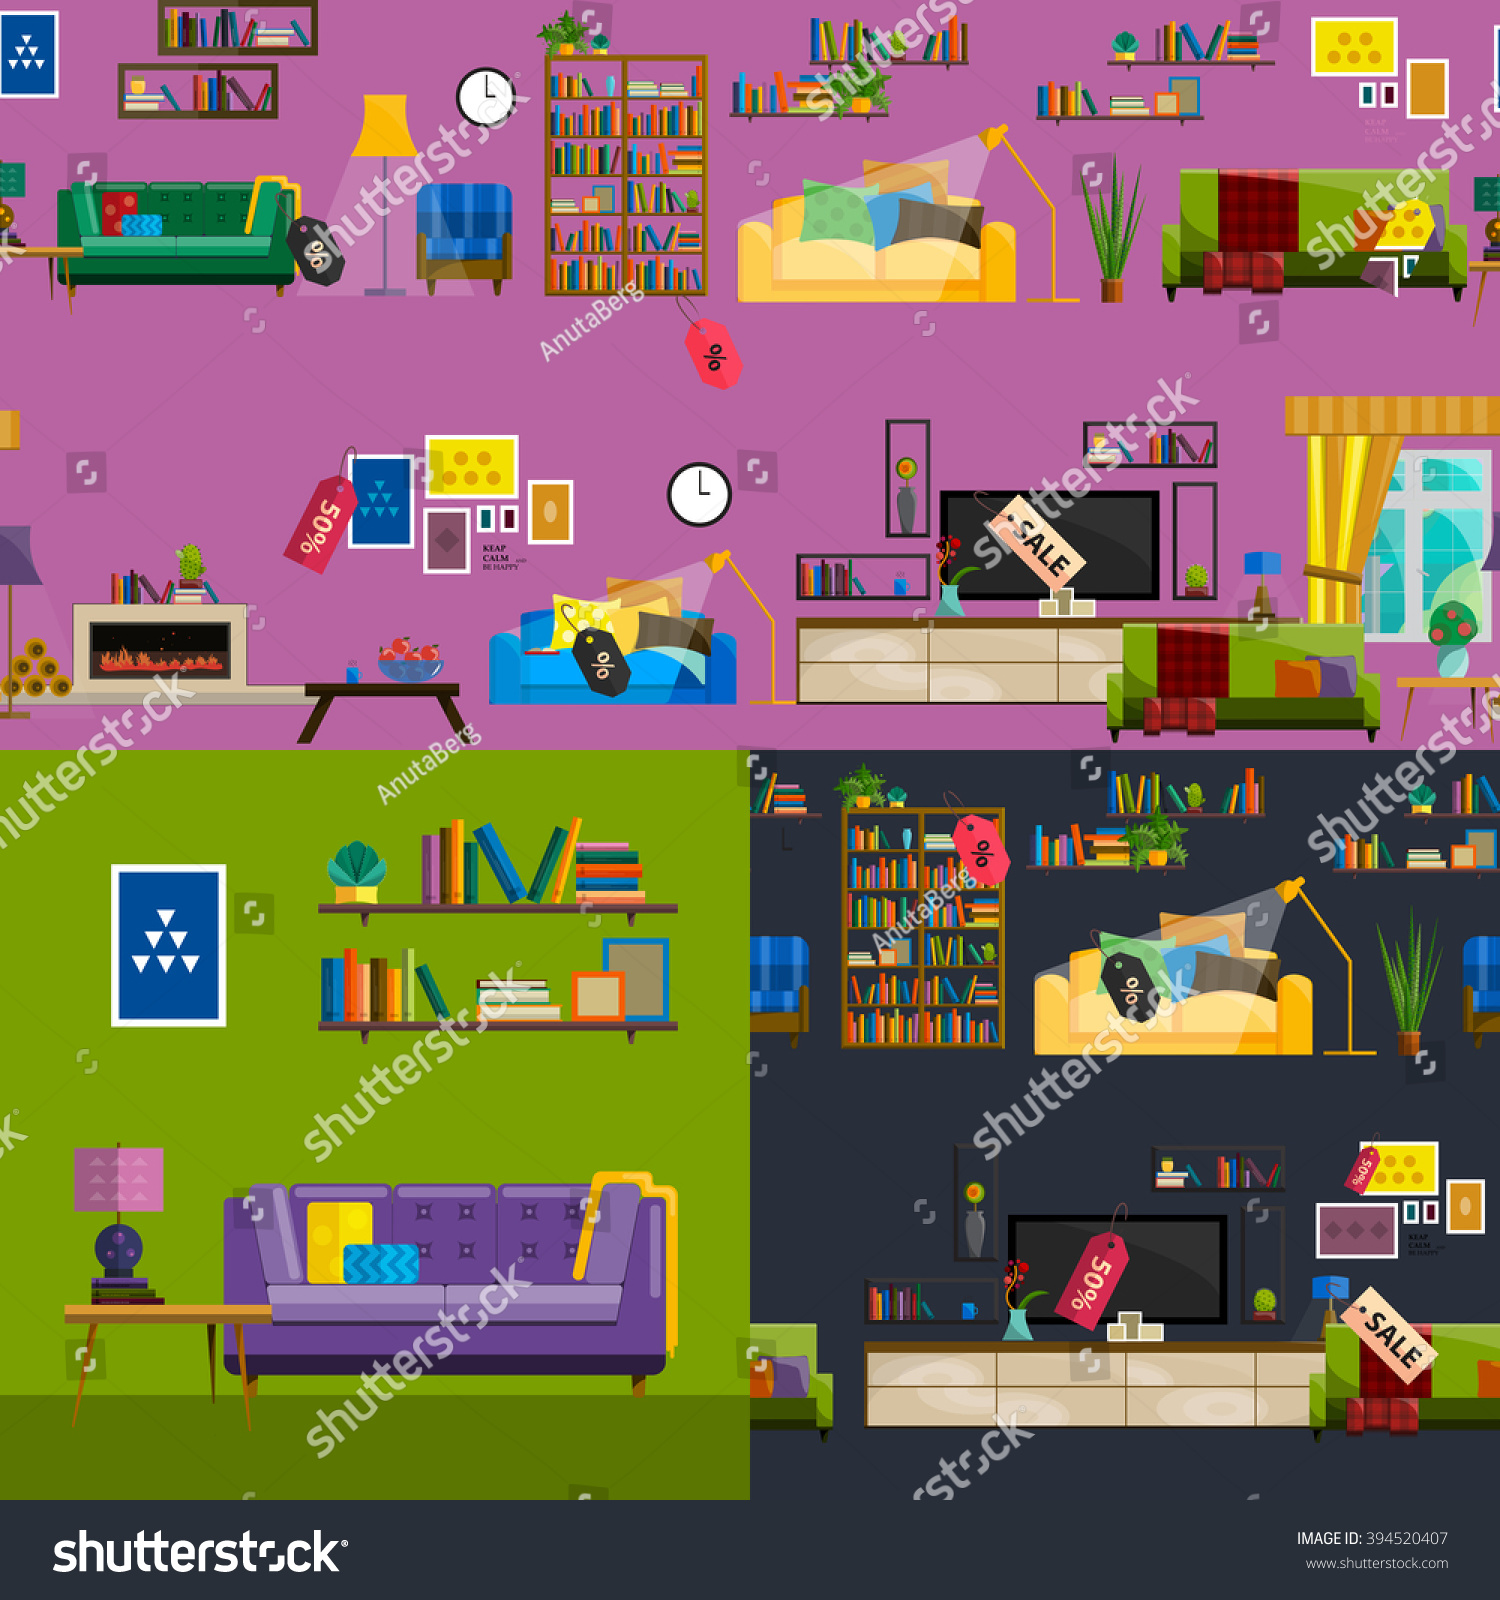 furniture shop super salegraphic concept home stock vector furniture shop super salegraphic concept home interior design with decor banner for website or header